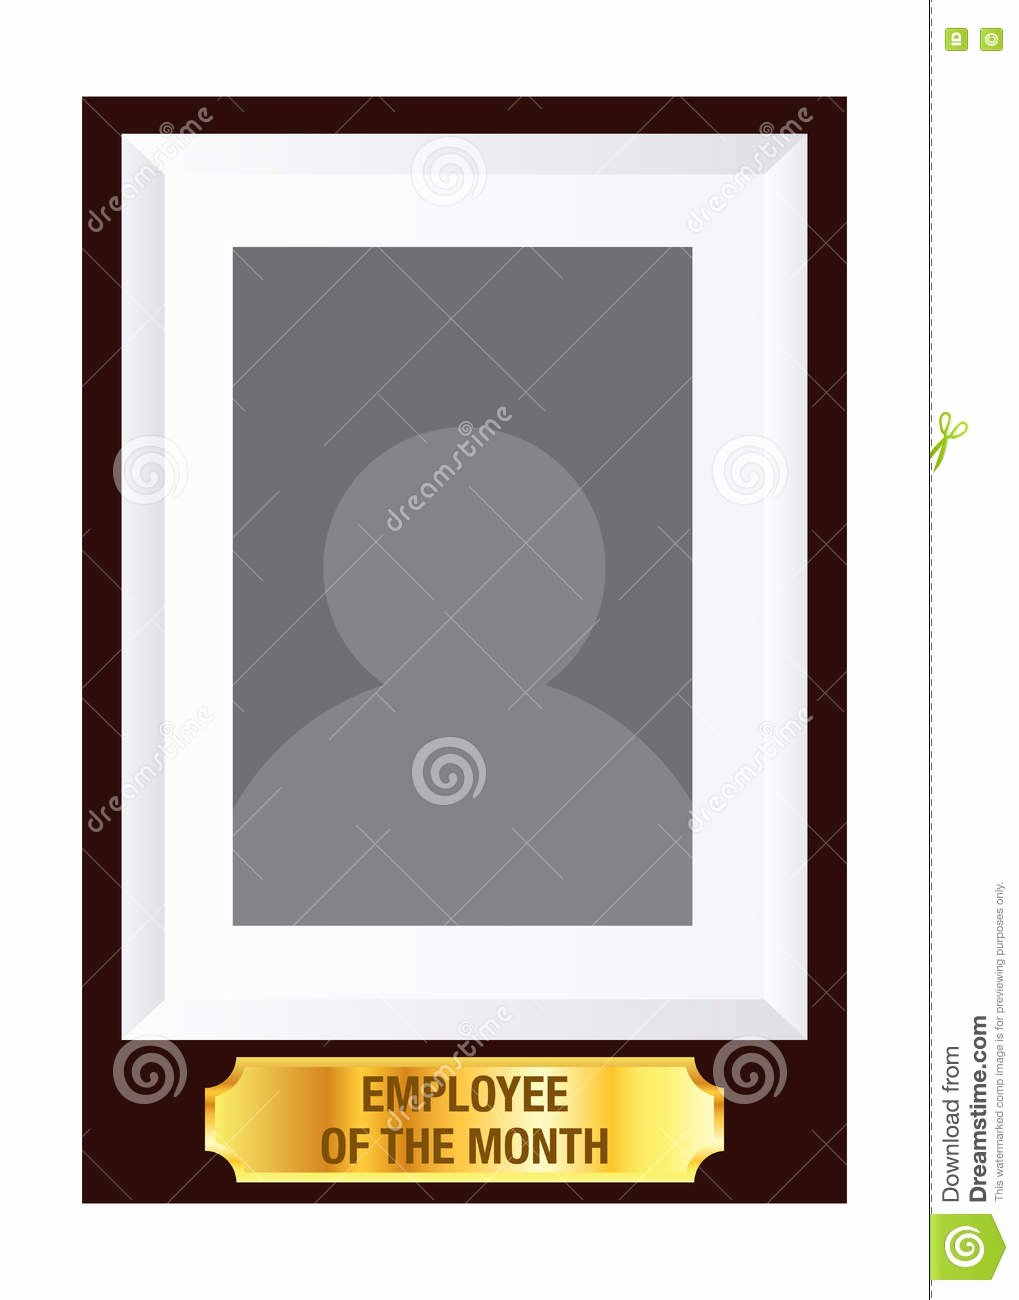 Printable Employee Of the Month Certificate Lovely Employee the Month Frame Template Stock Vector